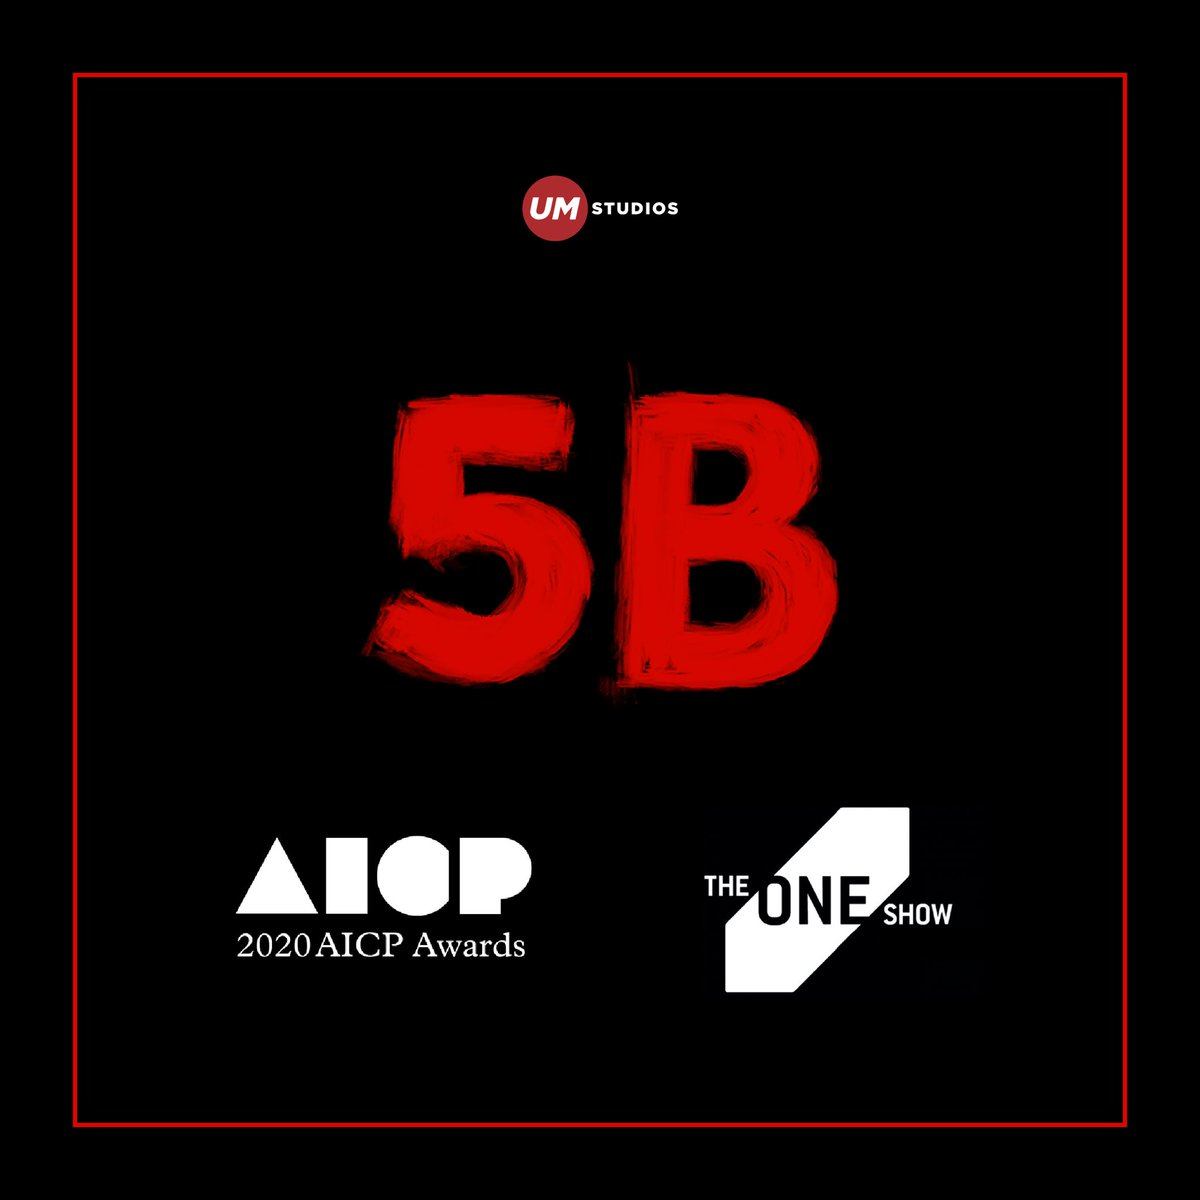 Thank you @AICProducers and @OneShow for recognizing @5BFilm, our UM Studios documentary created in partnership with @JNJNews, telling a vital chapter of America's battle with HIV/AIDS, which continues to disproportionately impact the LGBTQ+ and Black/African American communities https://t.co/SHIDGPQ79K